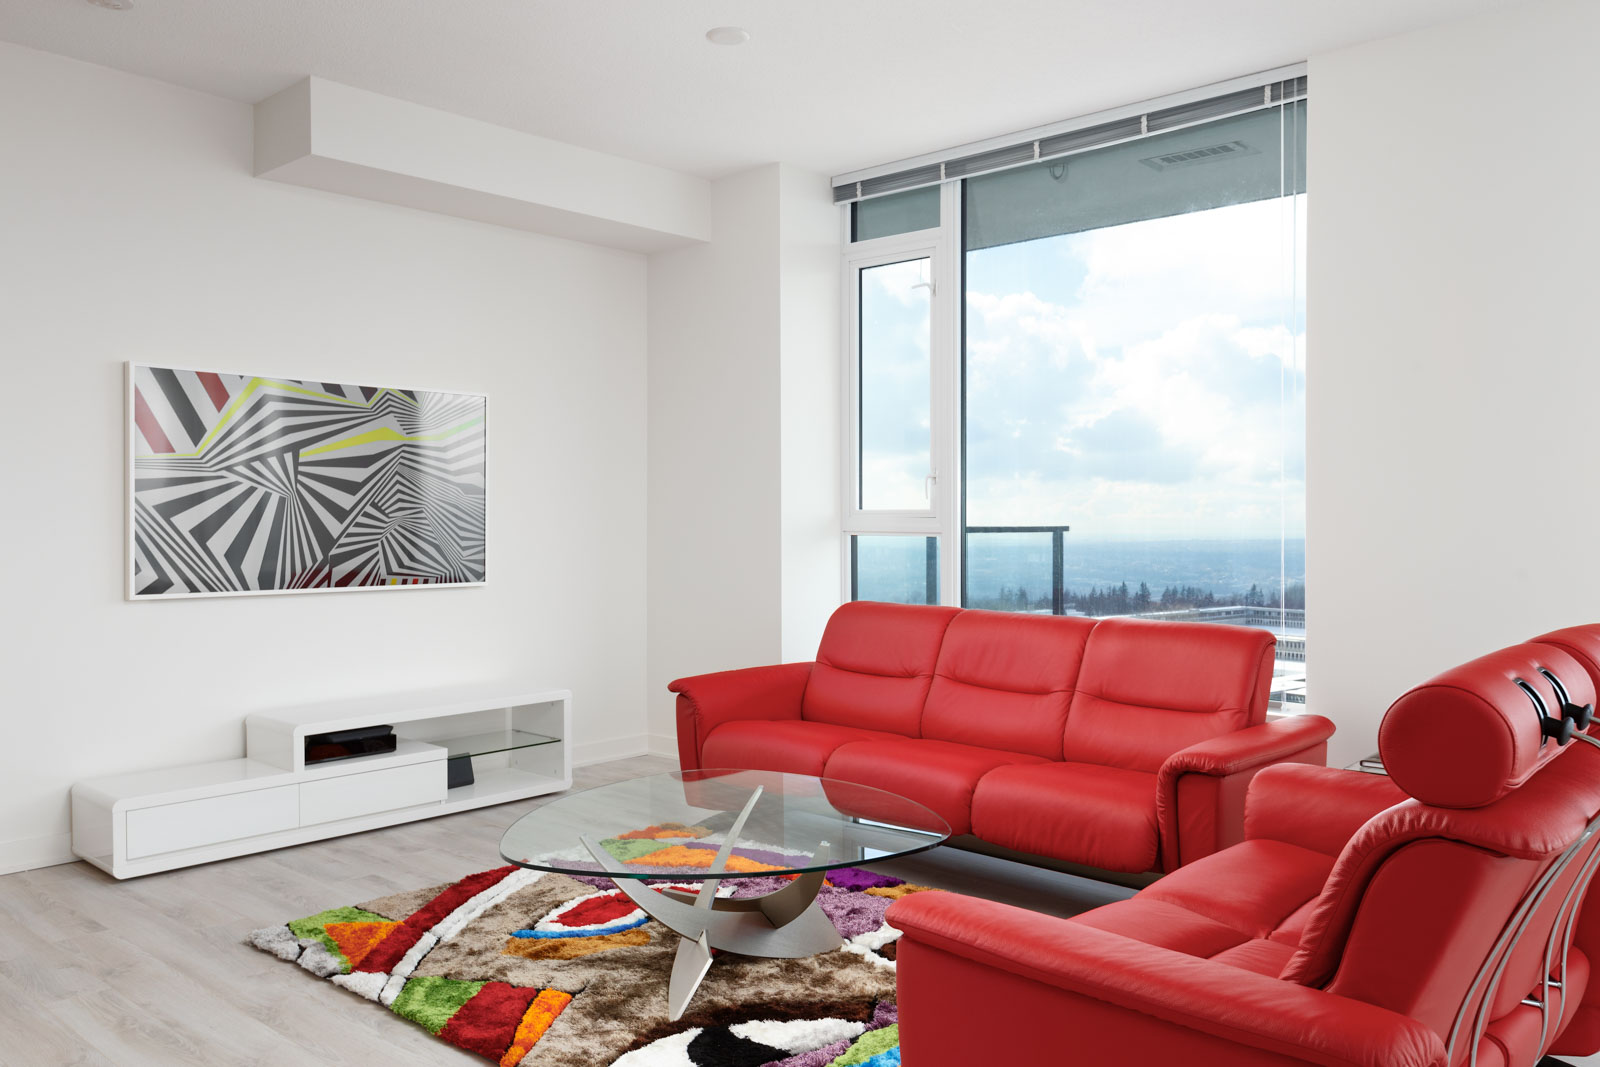 Living area with vibrant red couches and a bay window offering waterfront views from Burnaby rental penthouse.